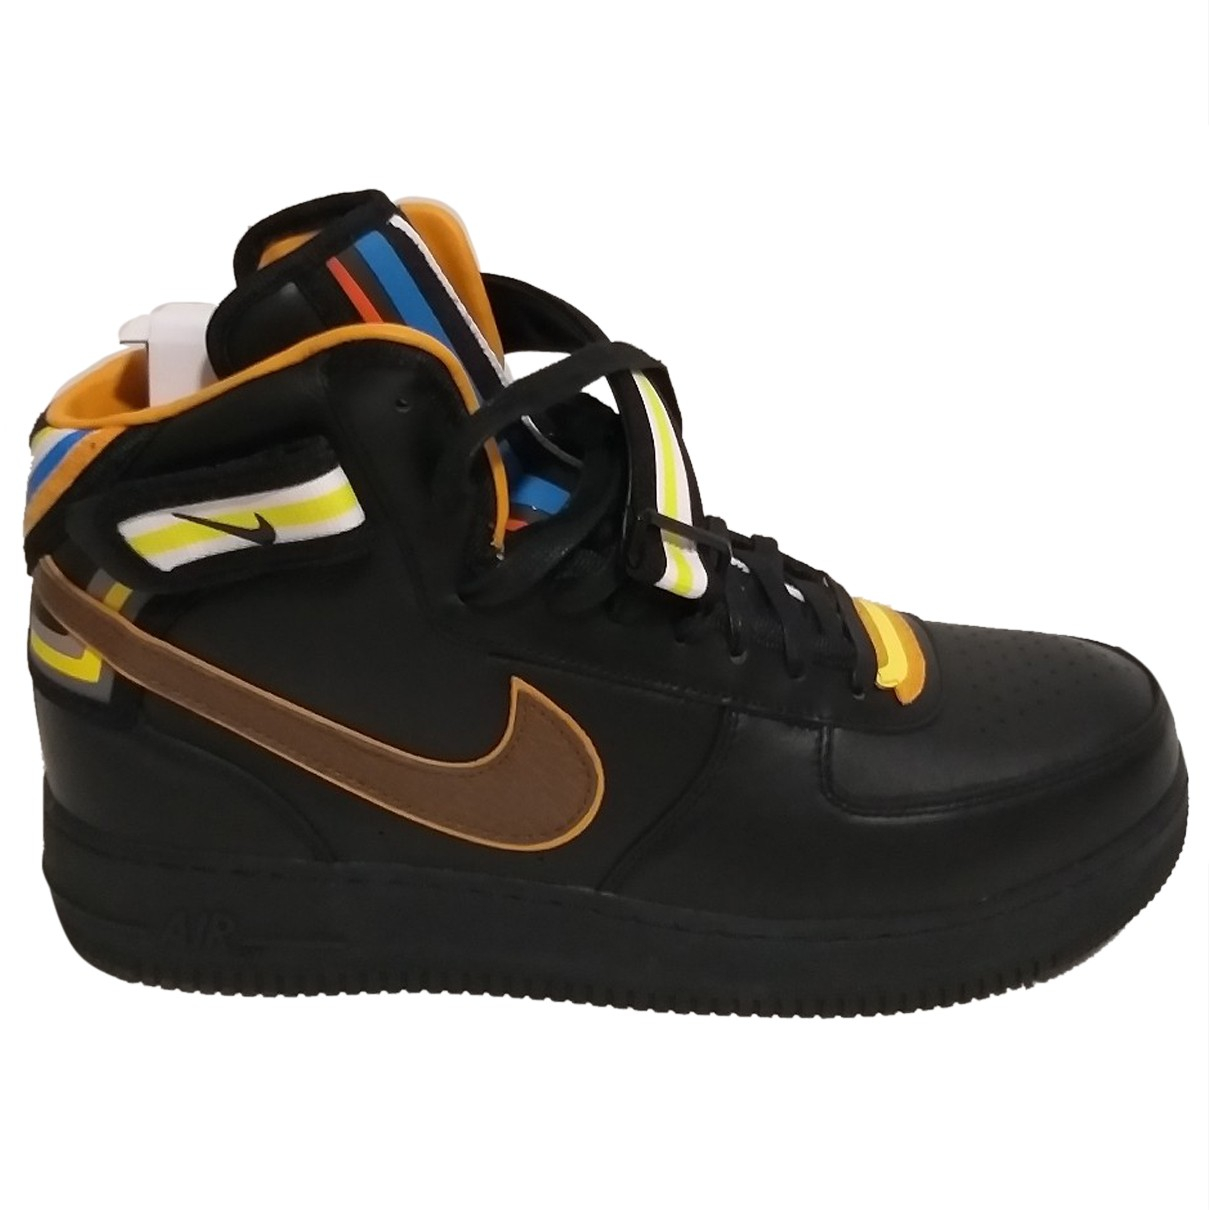 Nike By Riccardo Tisci N Leather Trainers for Men 12 US